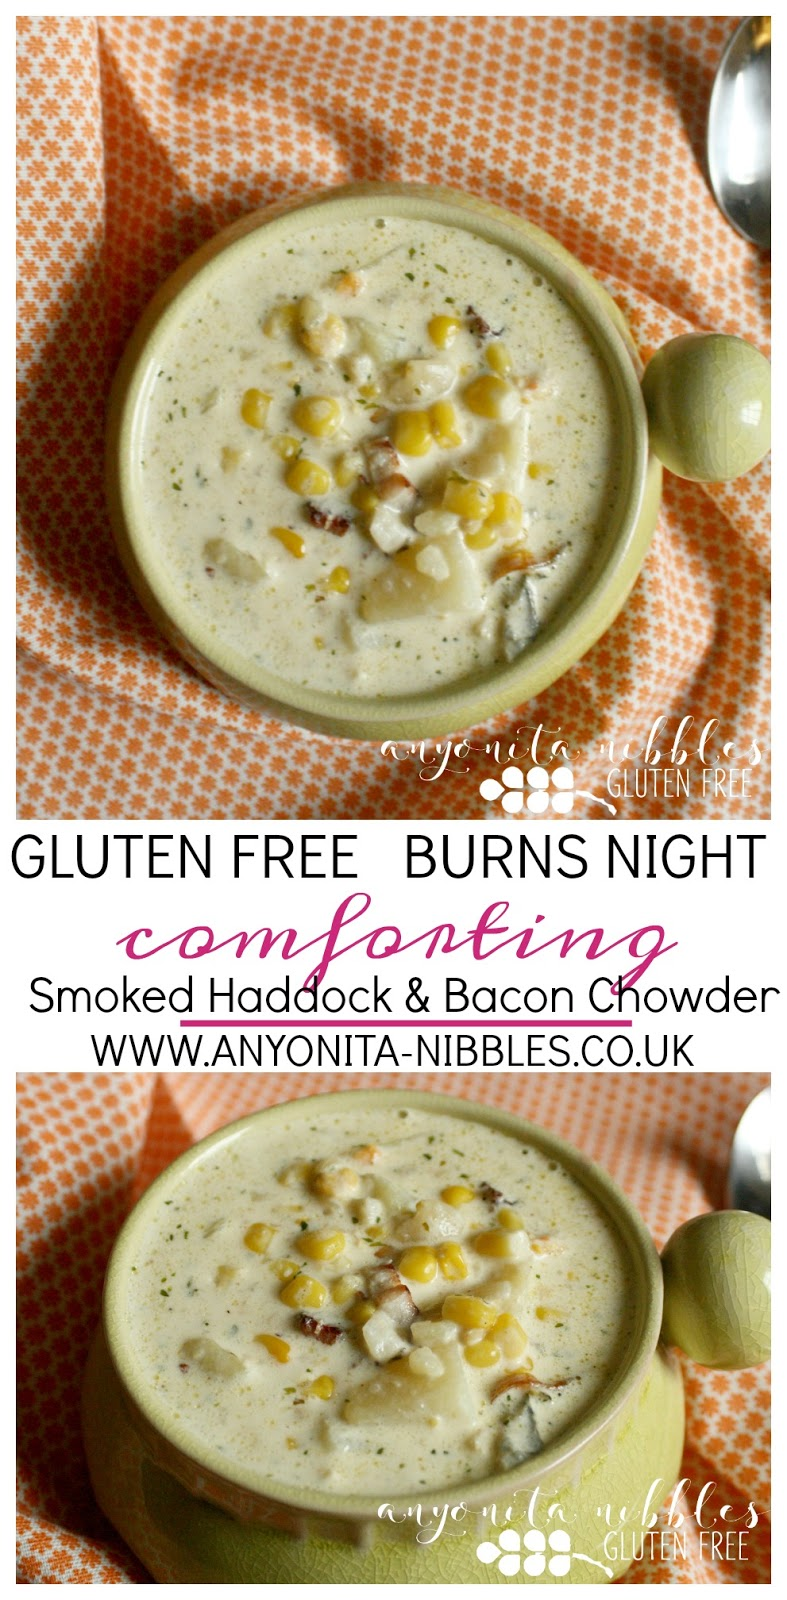 Gluten Free Smoked Haddock and Bacon Chowder for Burns Night| Anyonita Nibbles Gluten Free